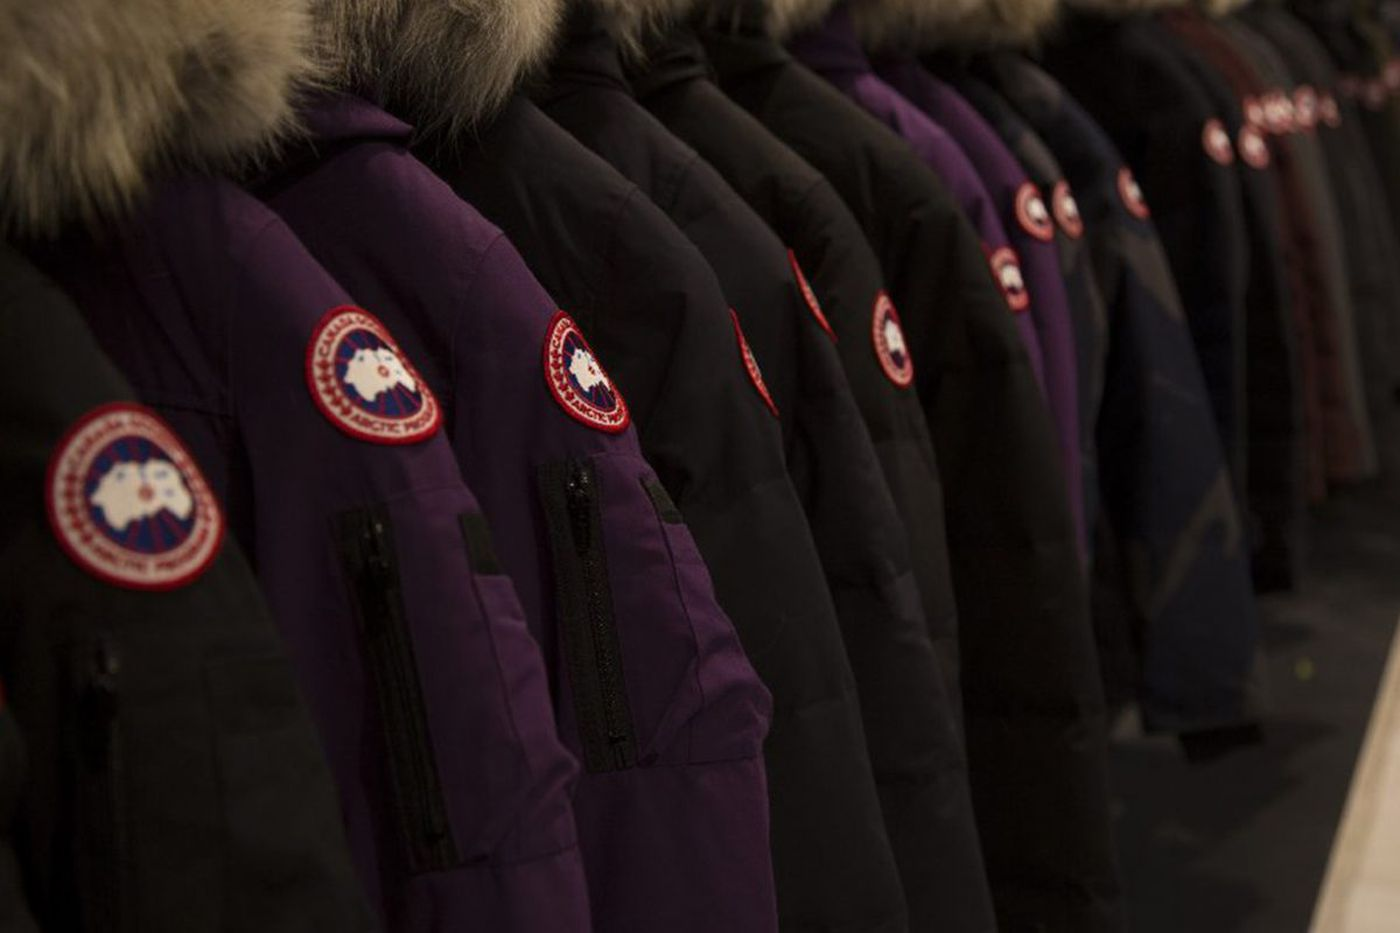 Canada Goose shares have nearly tripled as its parkas fly off shelves